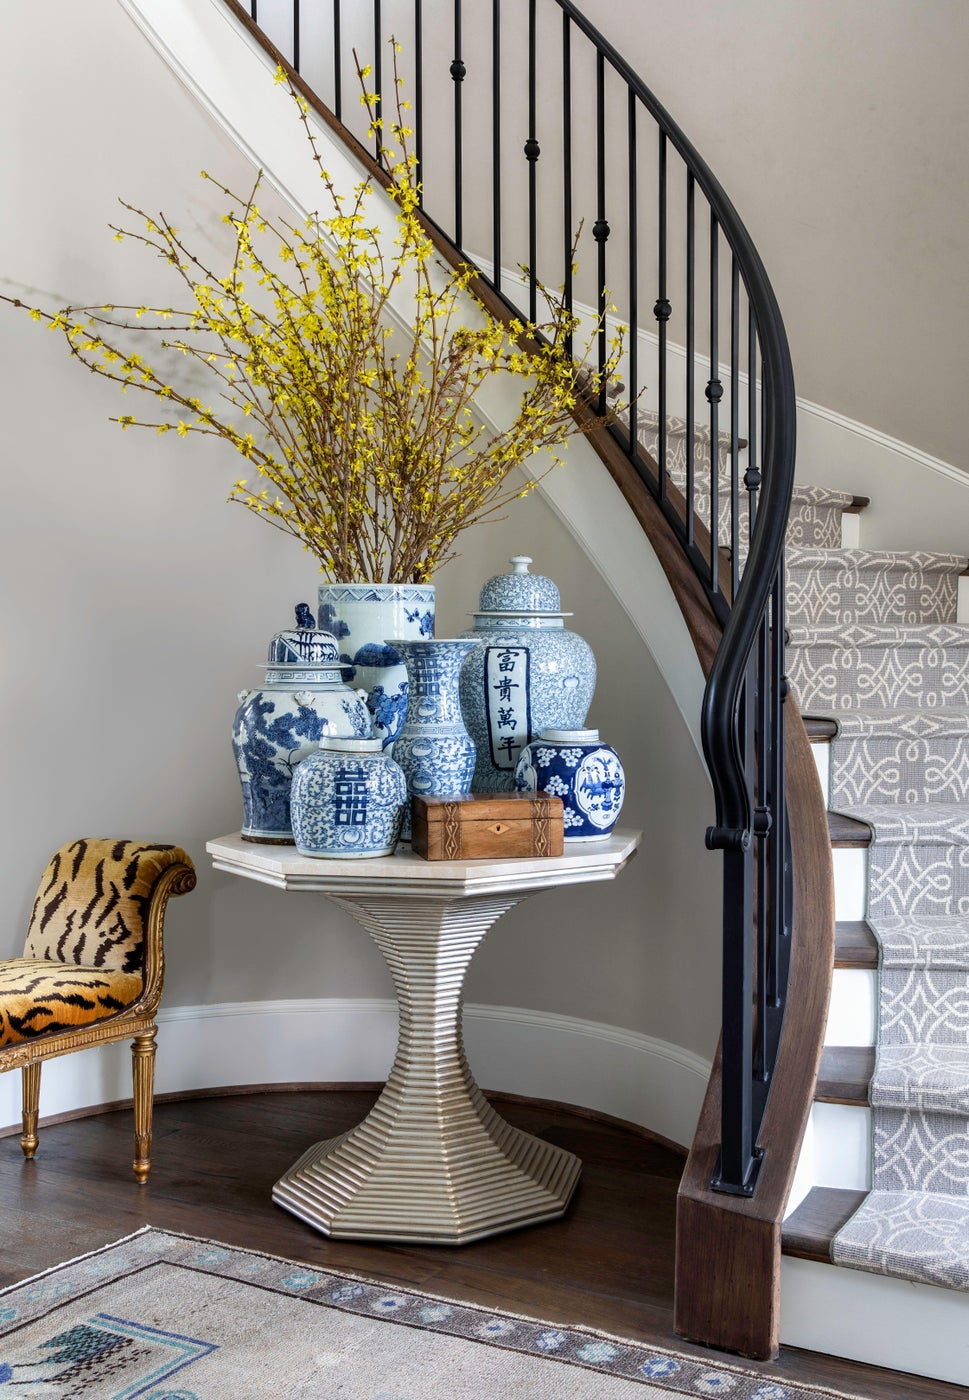 Formal entry hall & stairway with patterned runner & blue-and-white porcelain